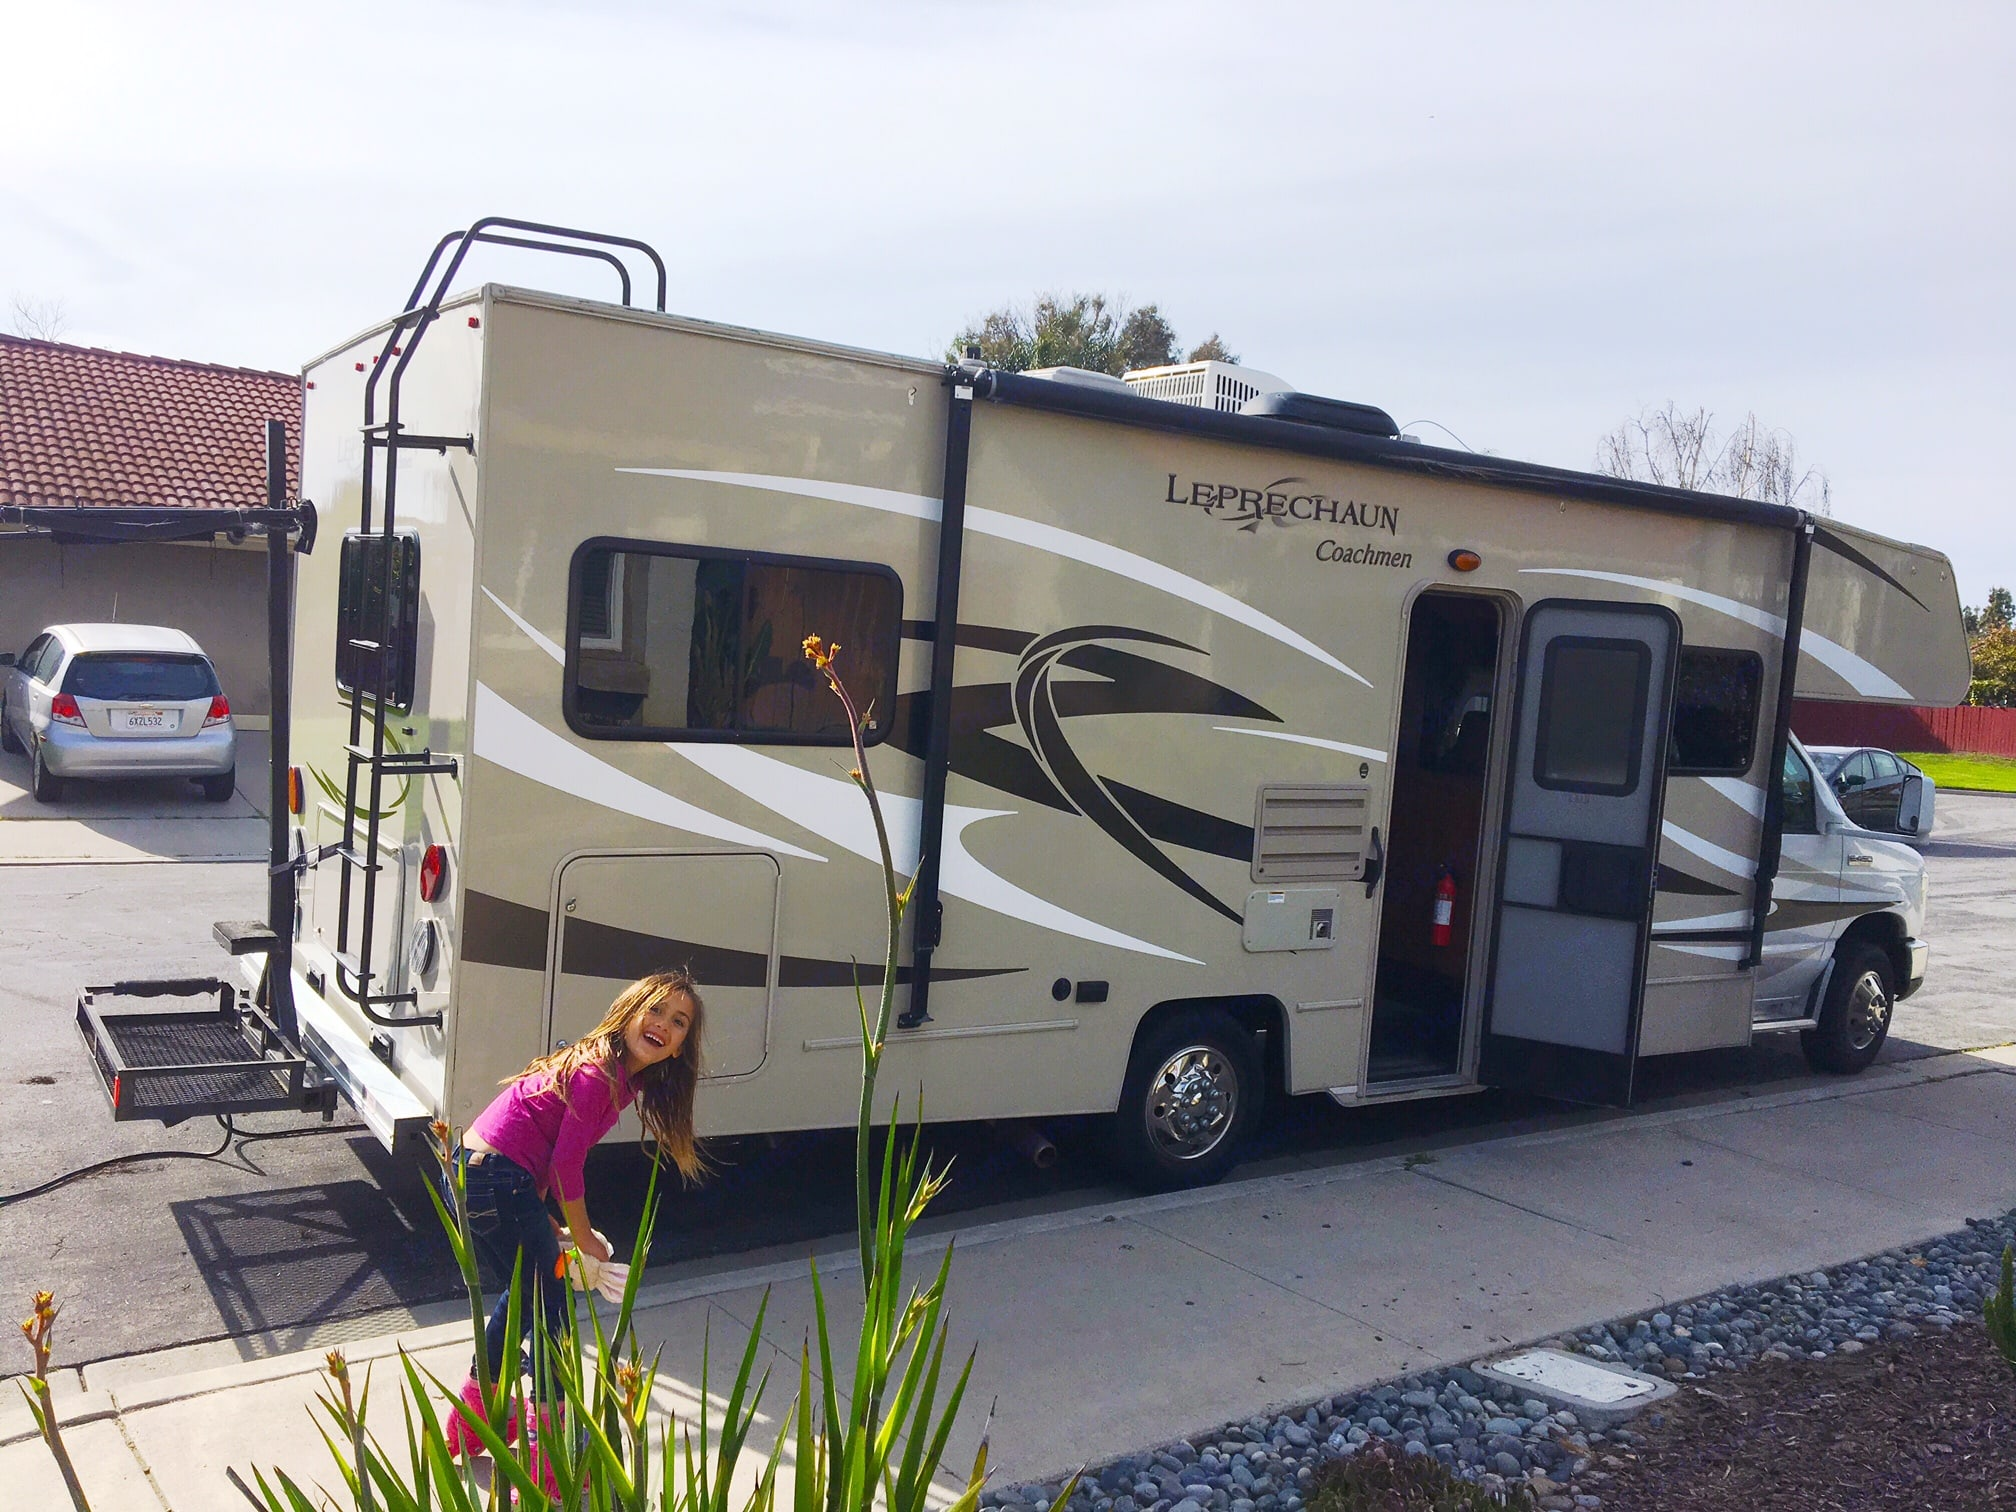 Exterior with vertical surfboard rack attached at hitch. Coachmen Leprechaun 2015